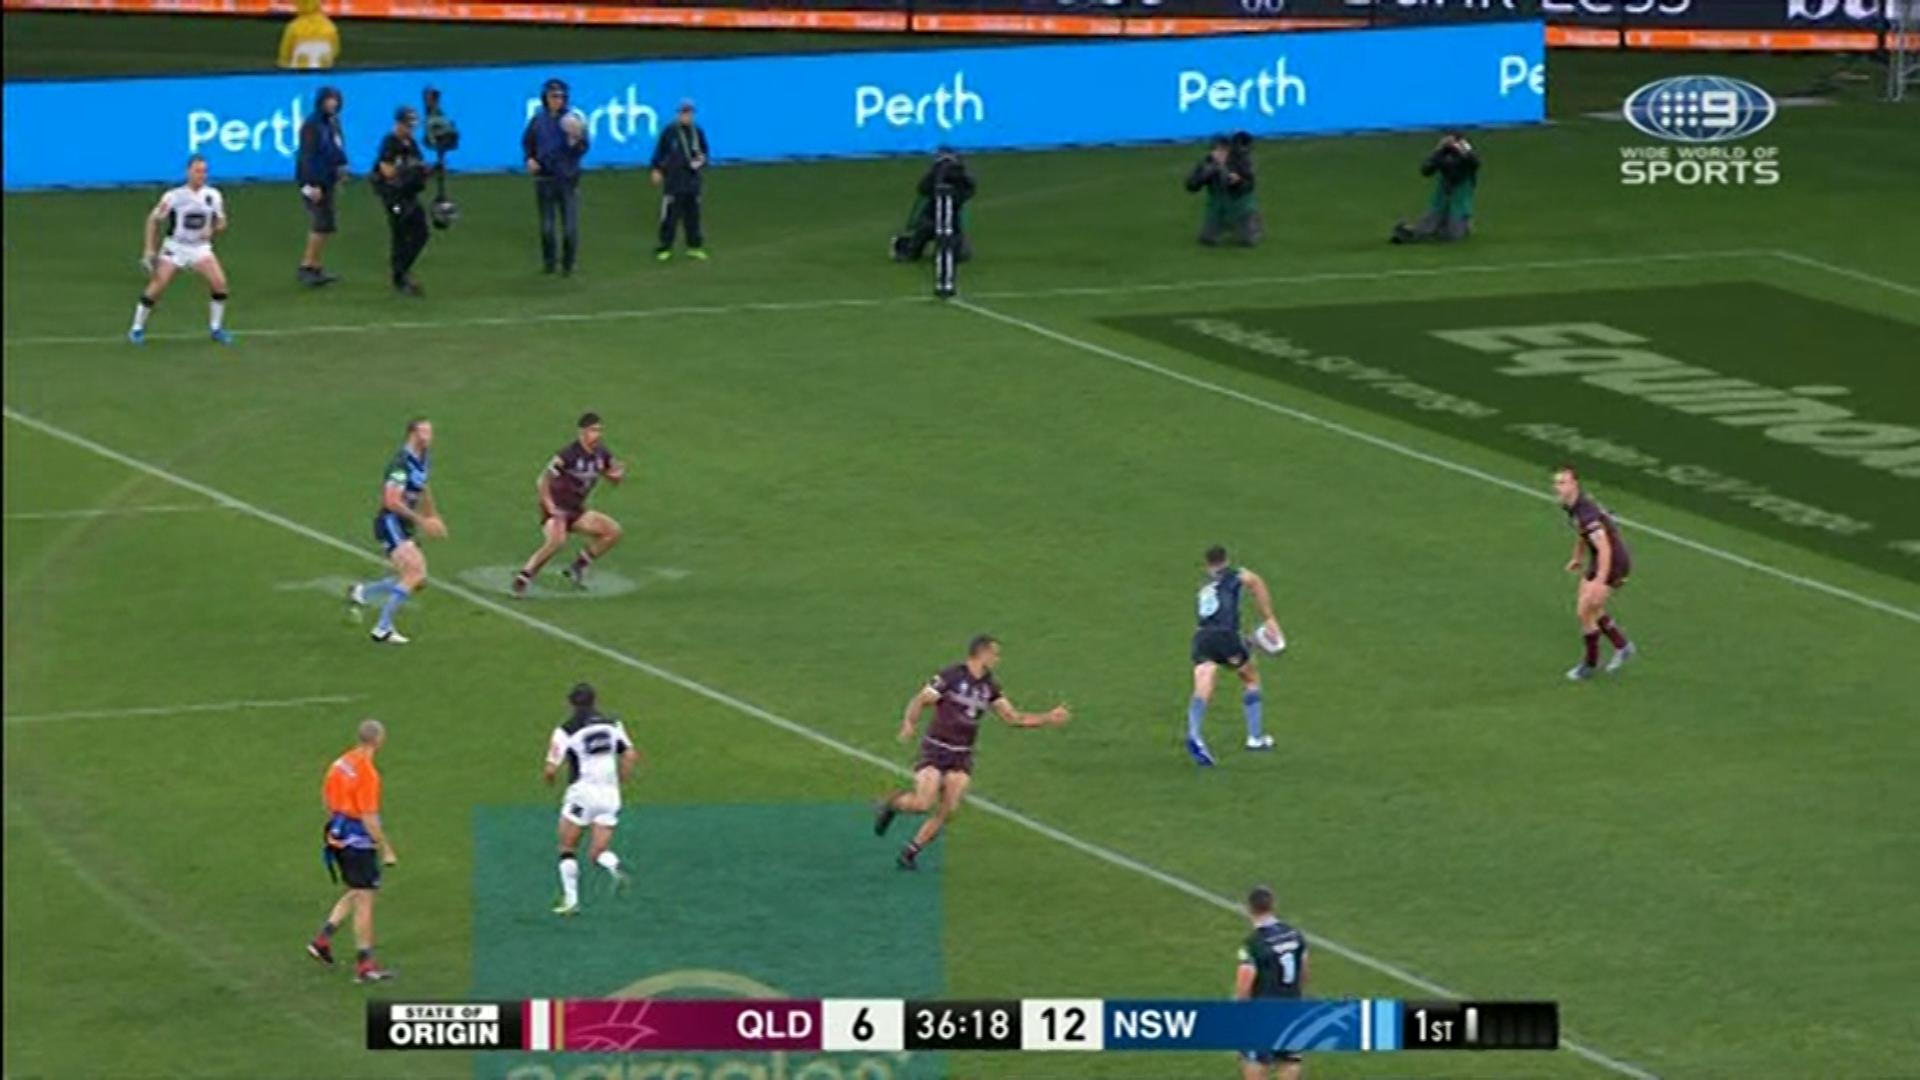 State of Origin: Channel Nine explain why game clock went back in time